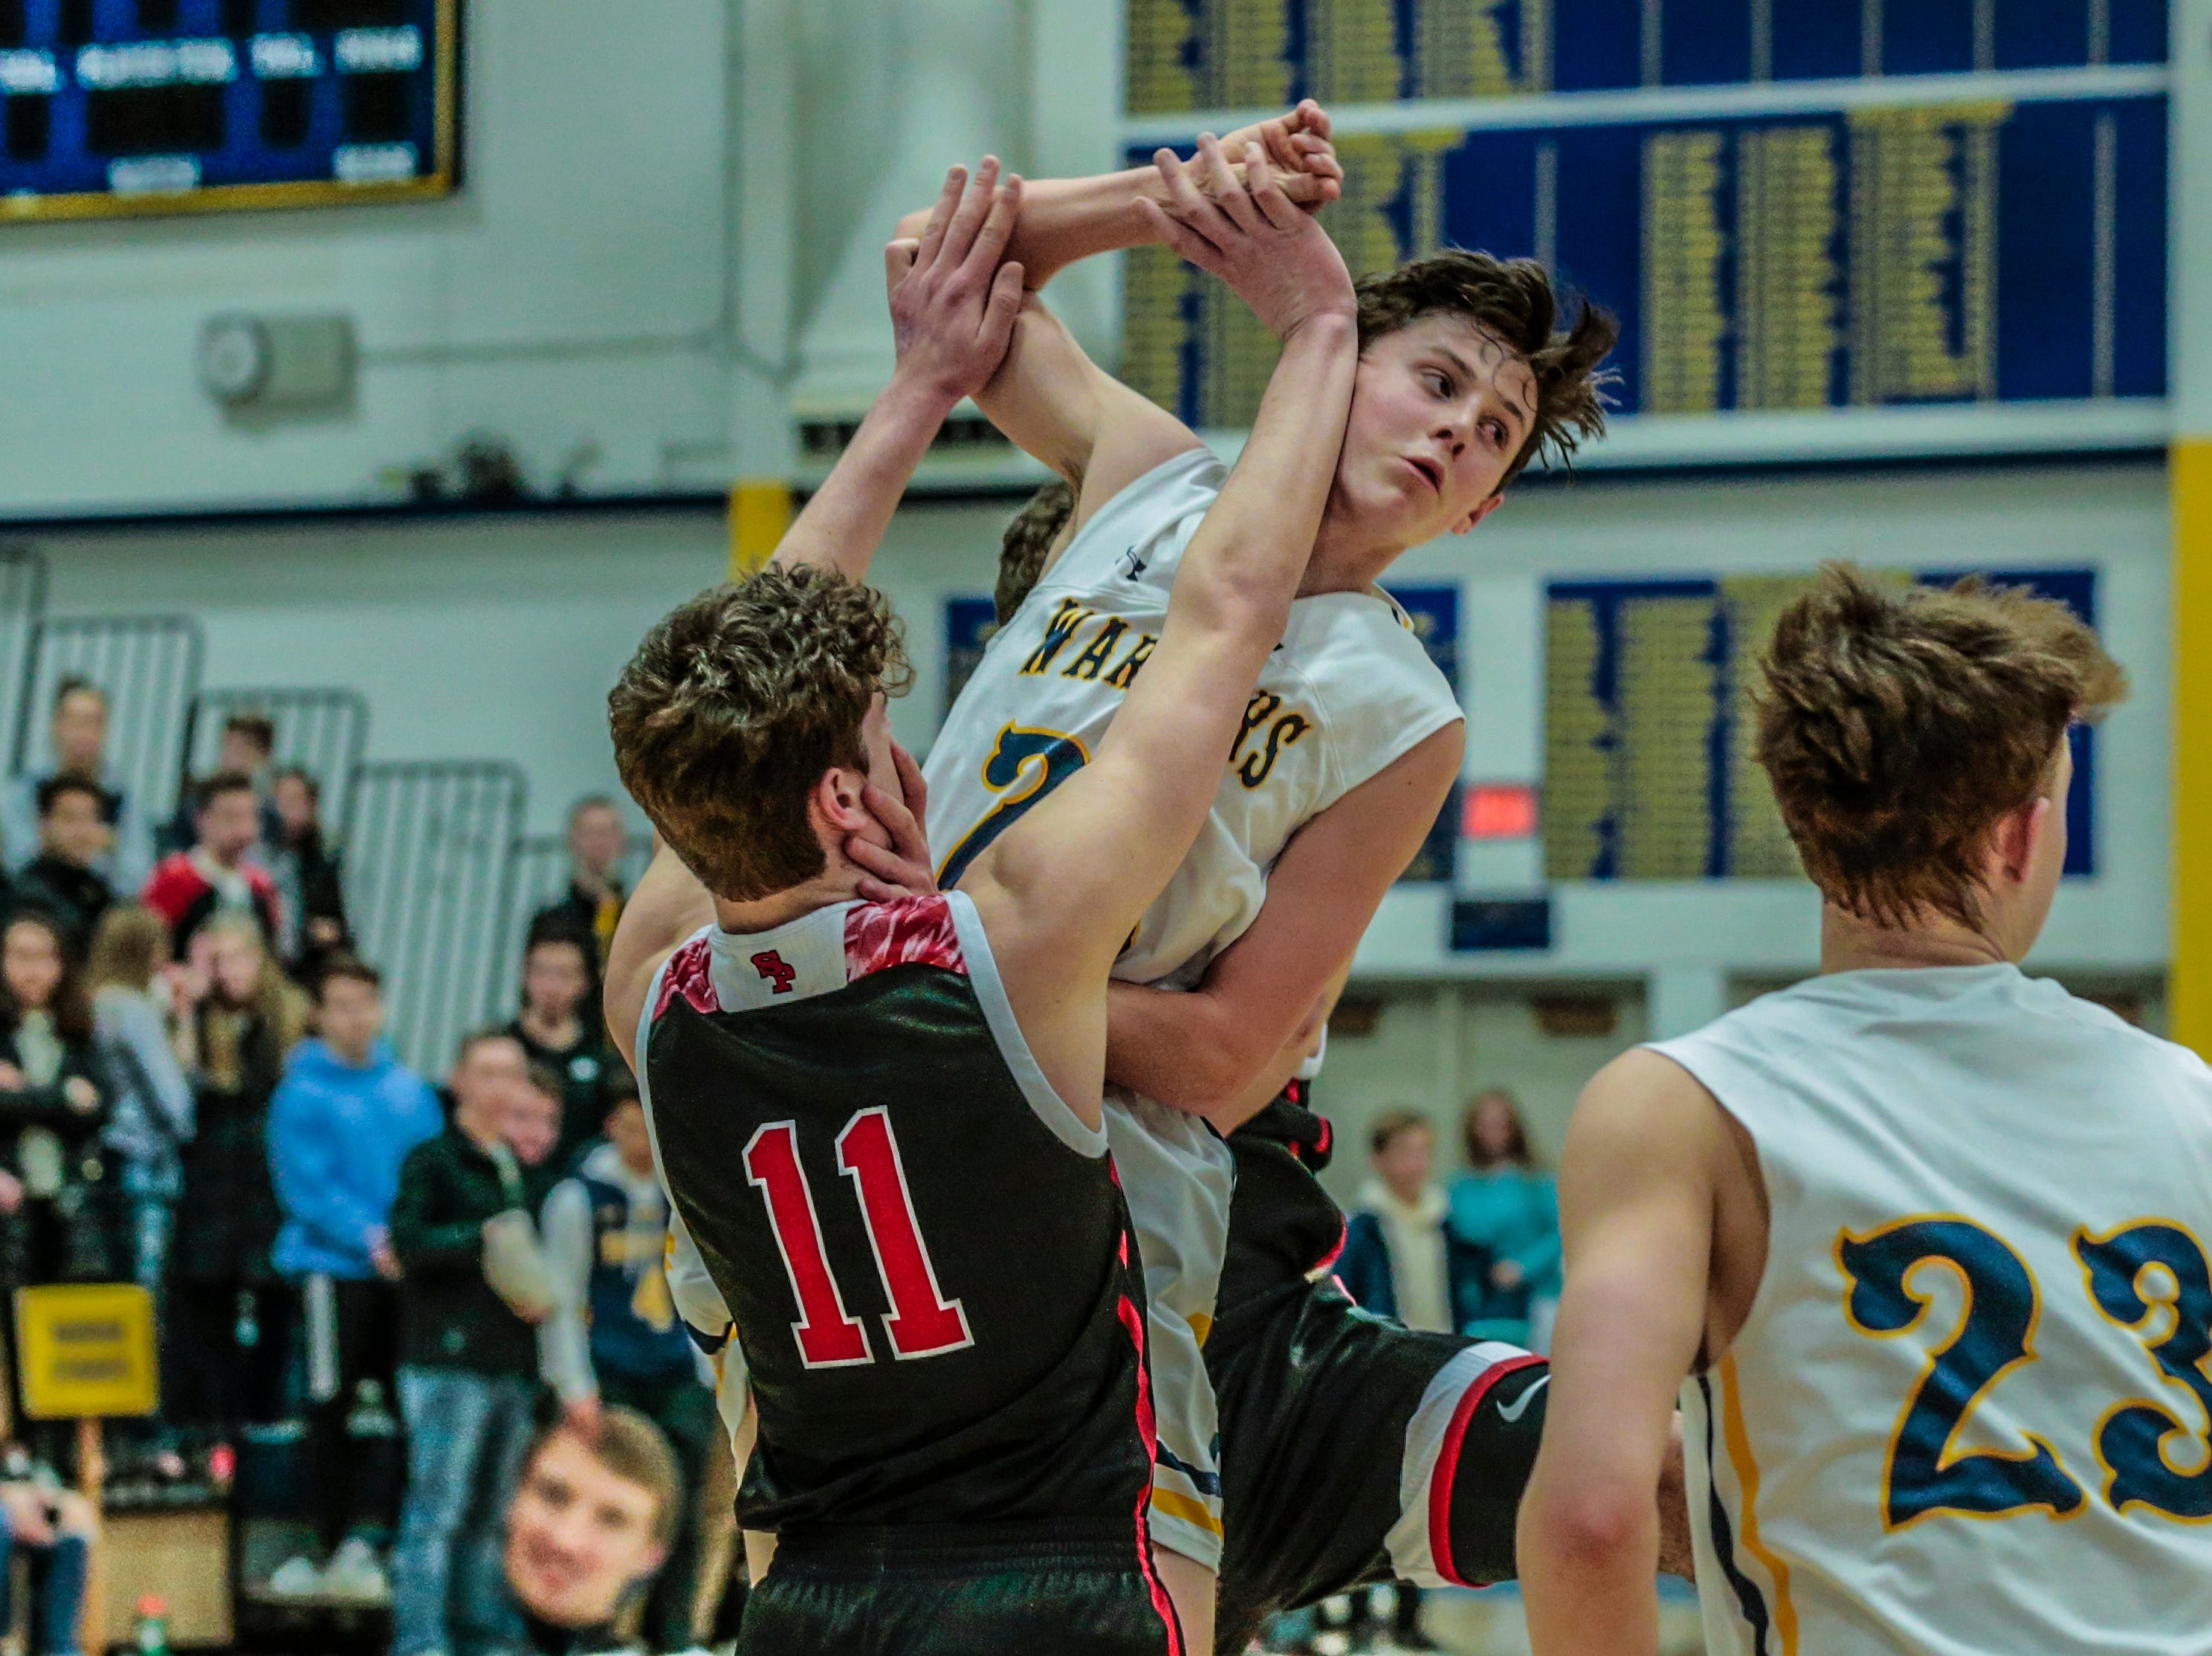 SPASH's Elliot Eron(11), left, blocks the ball off from West's Peter Fuchs(22) during Wisconsin Valley Conference boys basketball game Friday, Feb. 15, 2019, at Wausau West High School in Wausau, Wis. T'xer Zhon Kha/USA TODAY NETWORK-Wisconsin